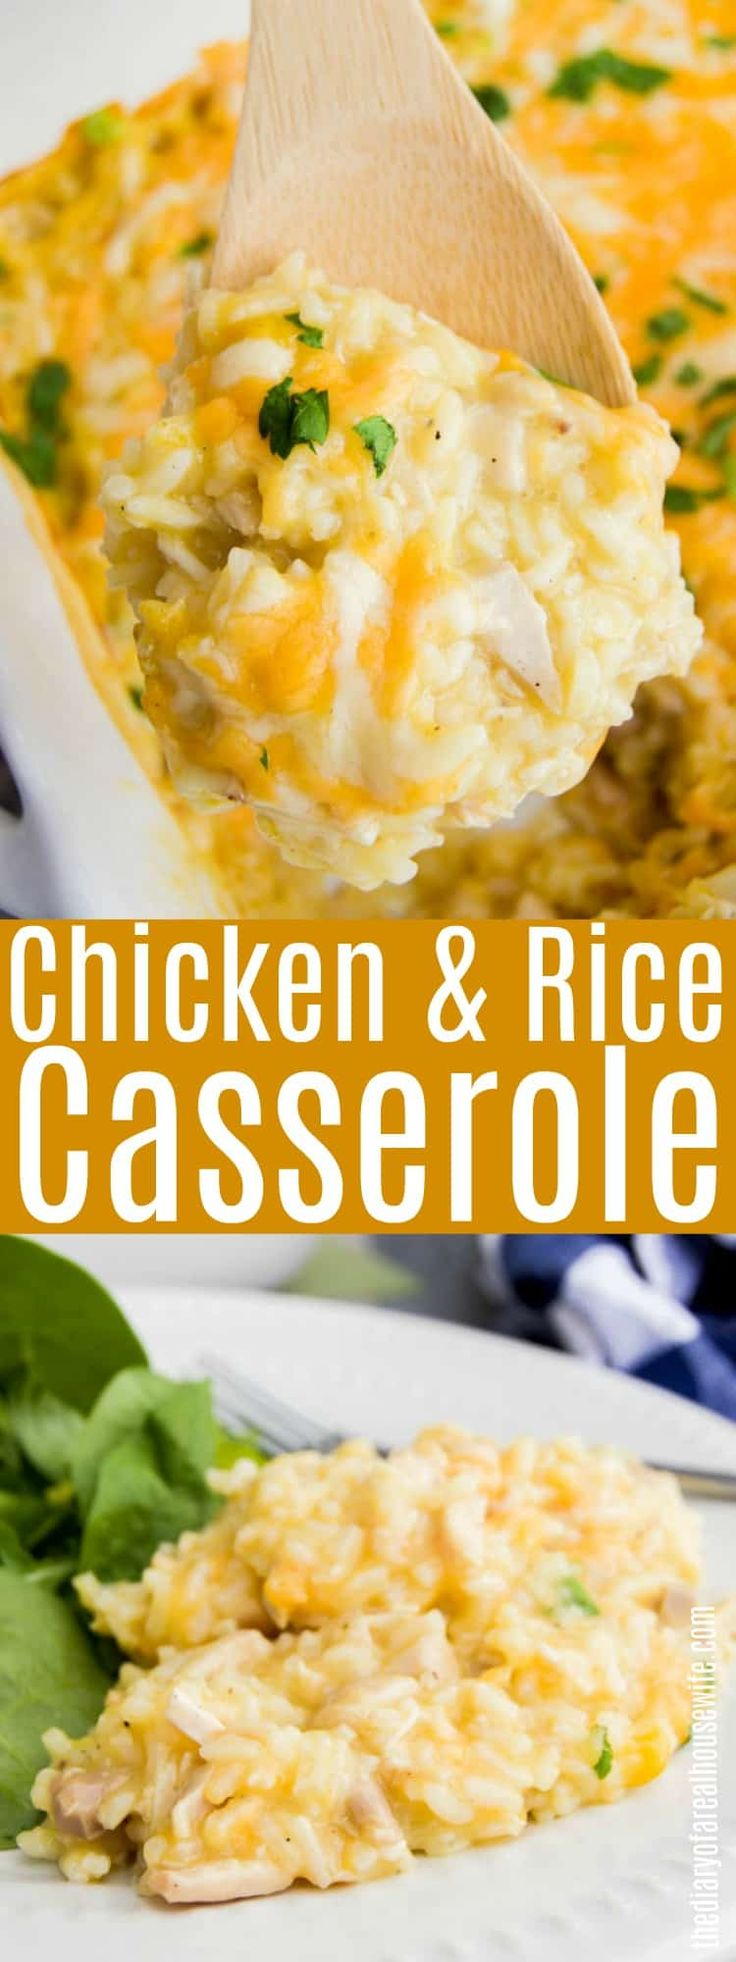 Chicken and Rice Casserole • The Diary of a Real Housewife